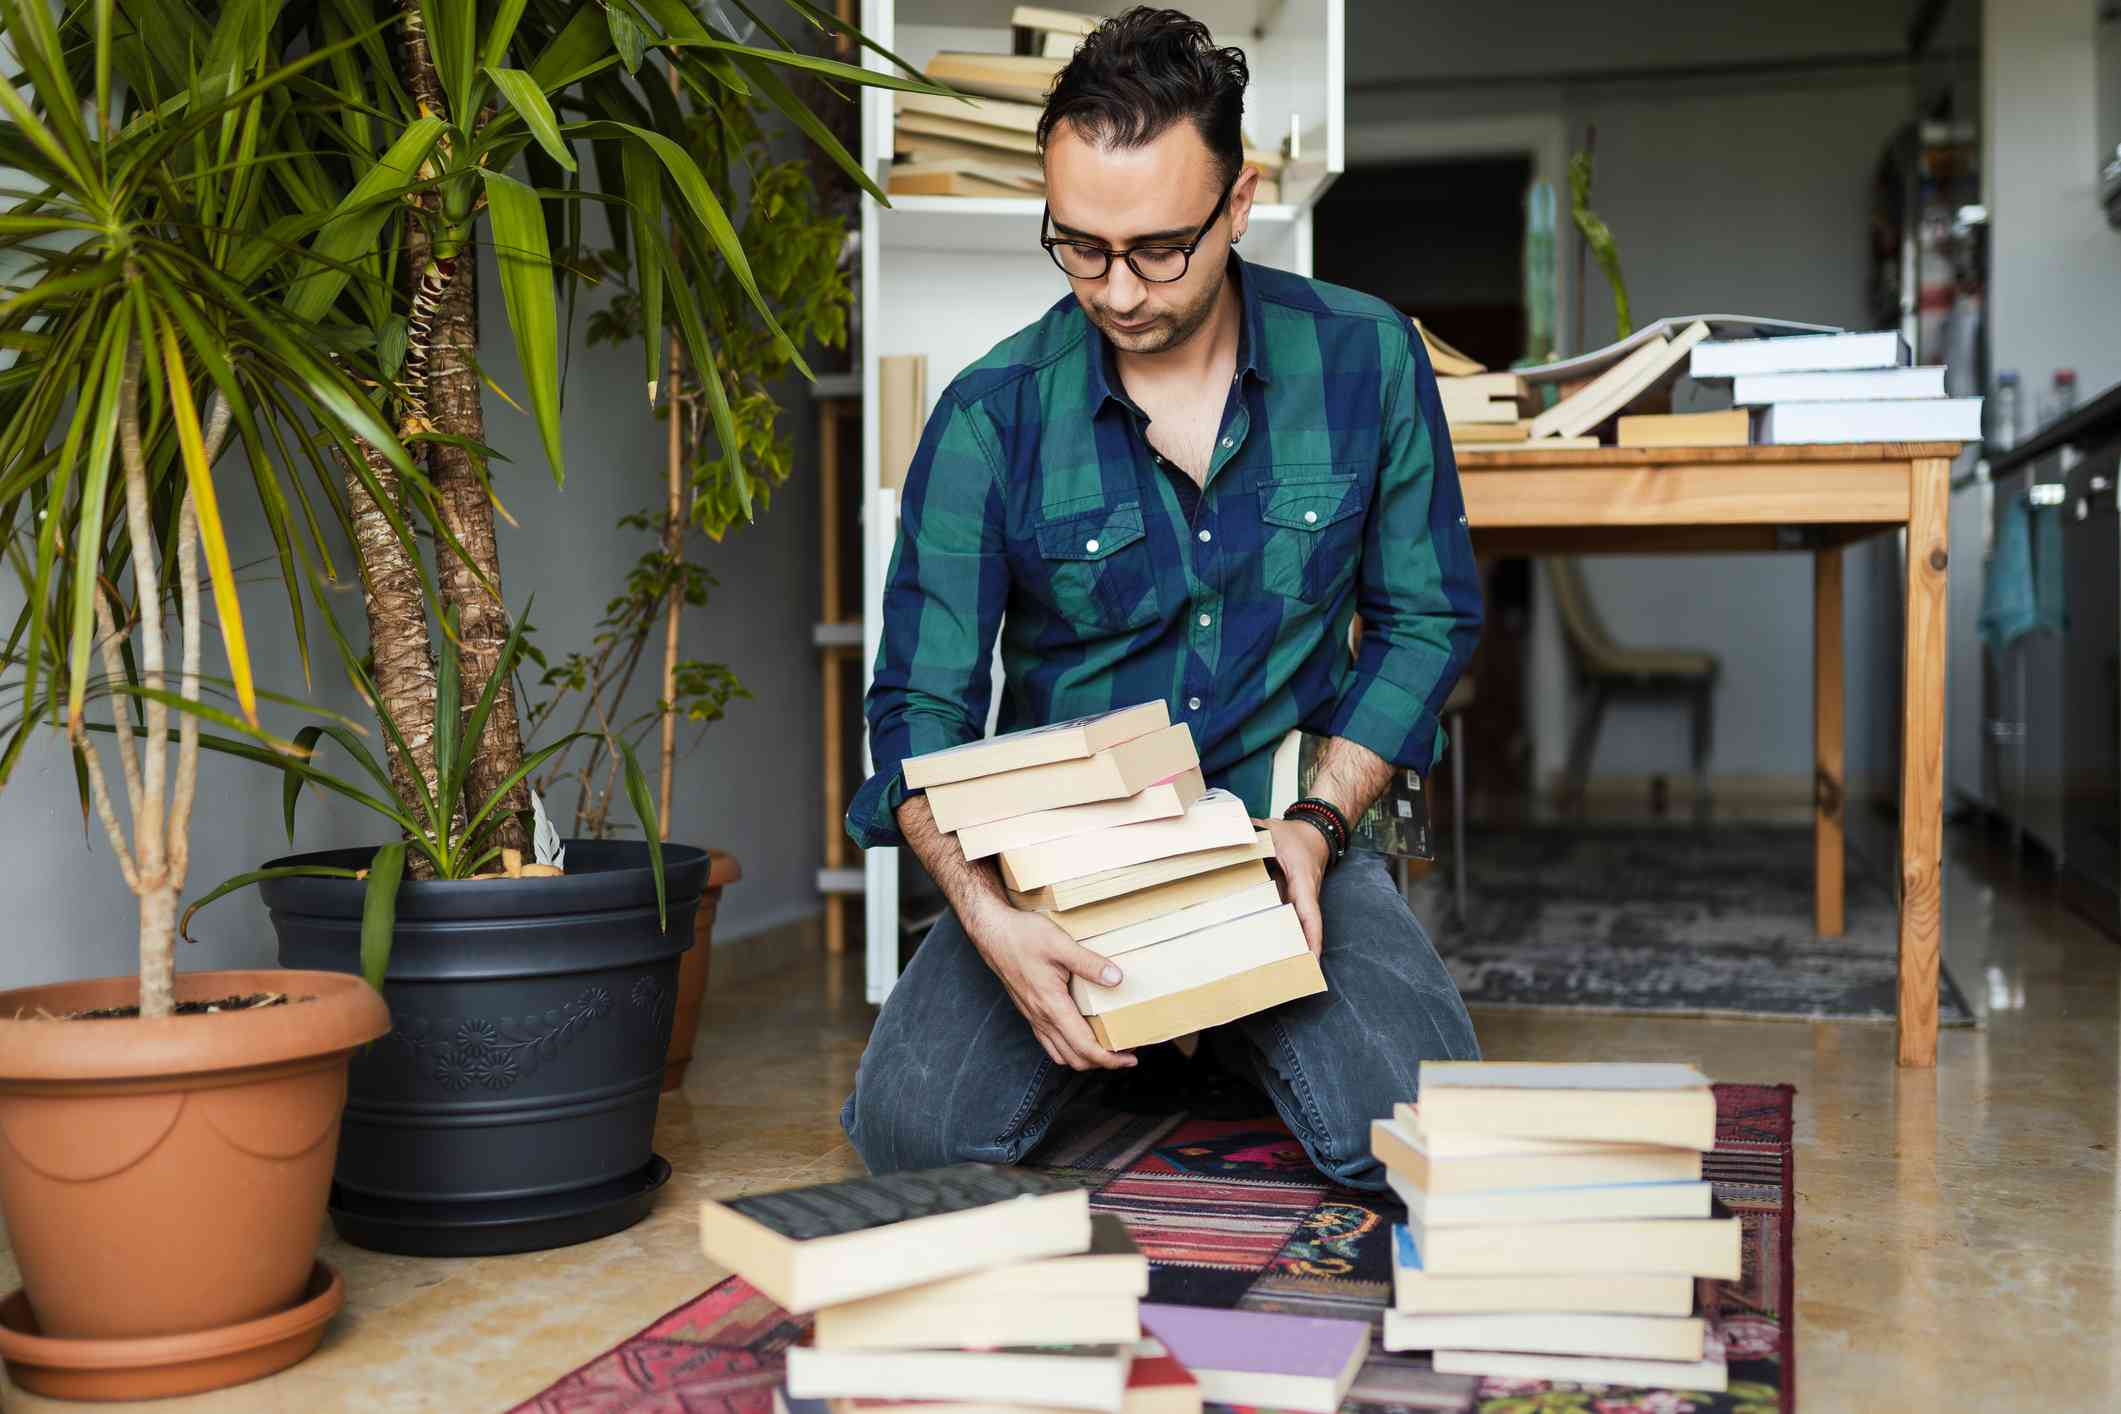 Young man in glasses rearranges pile of books